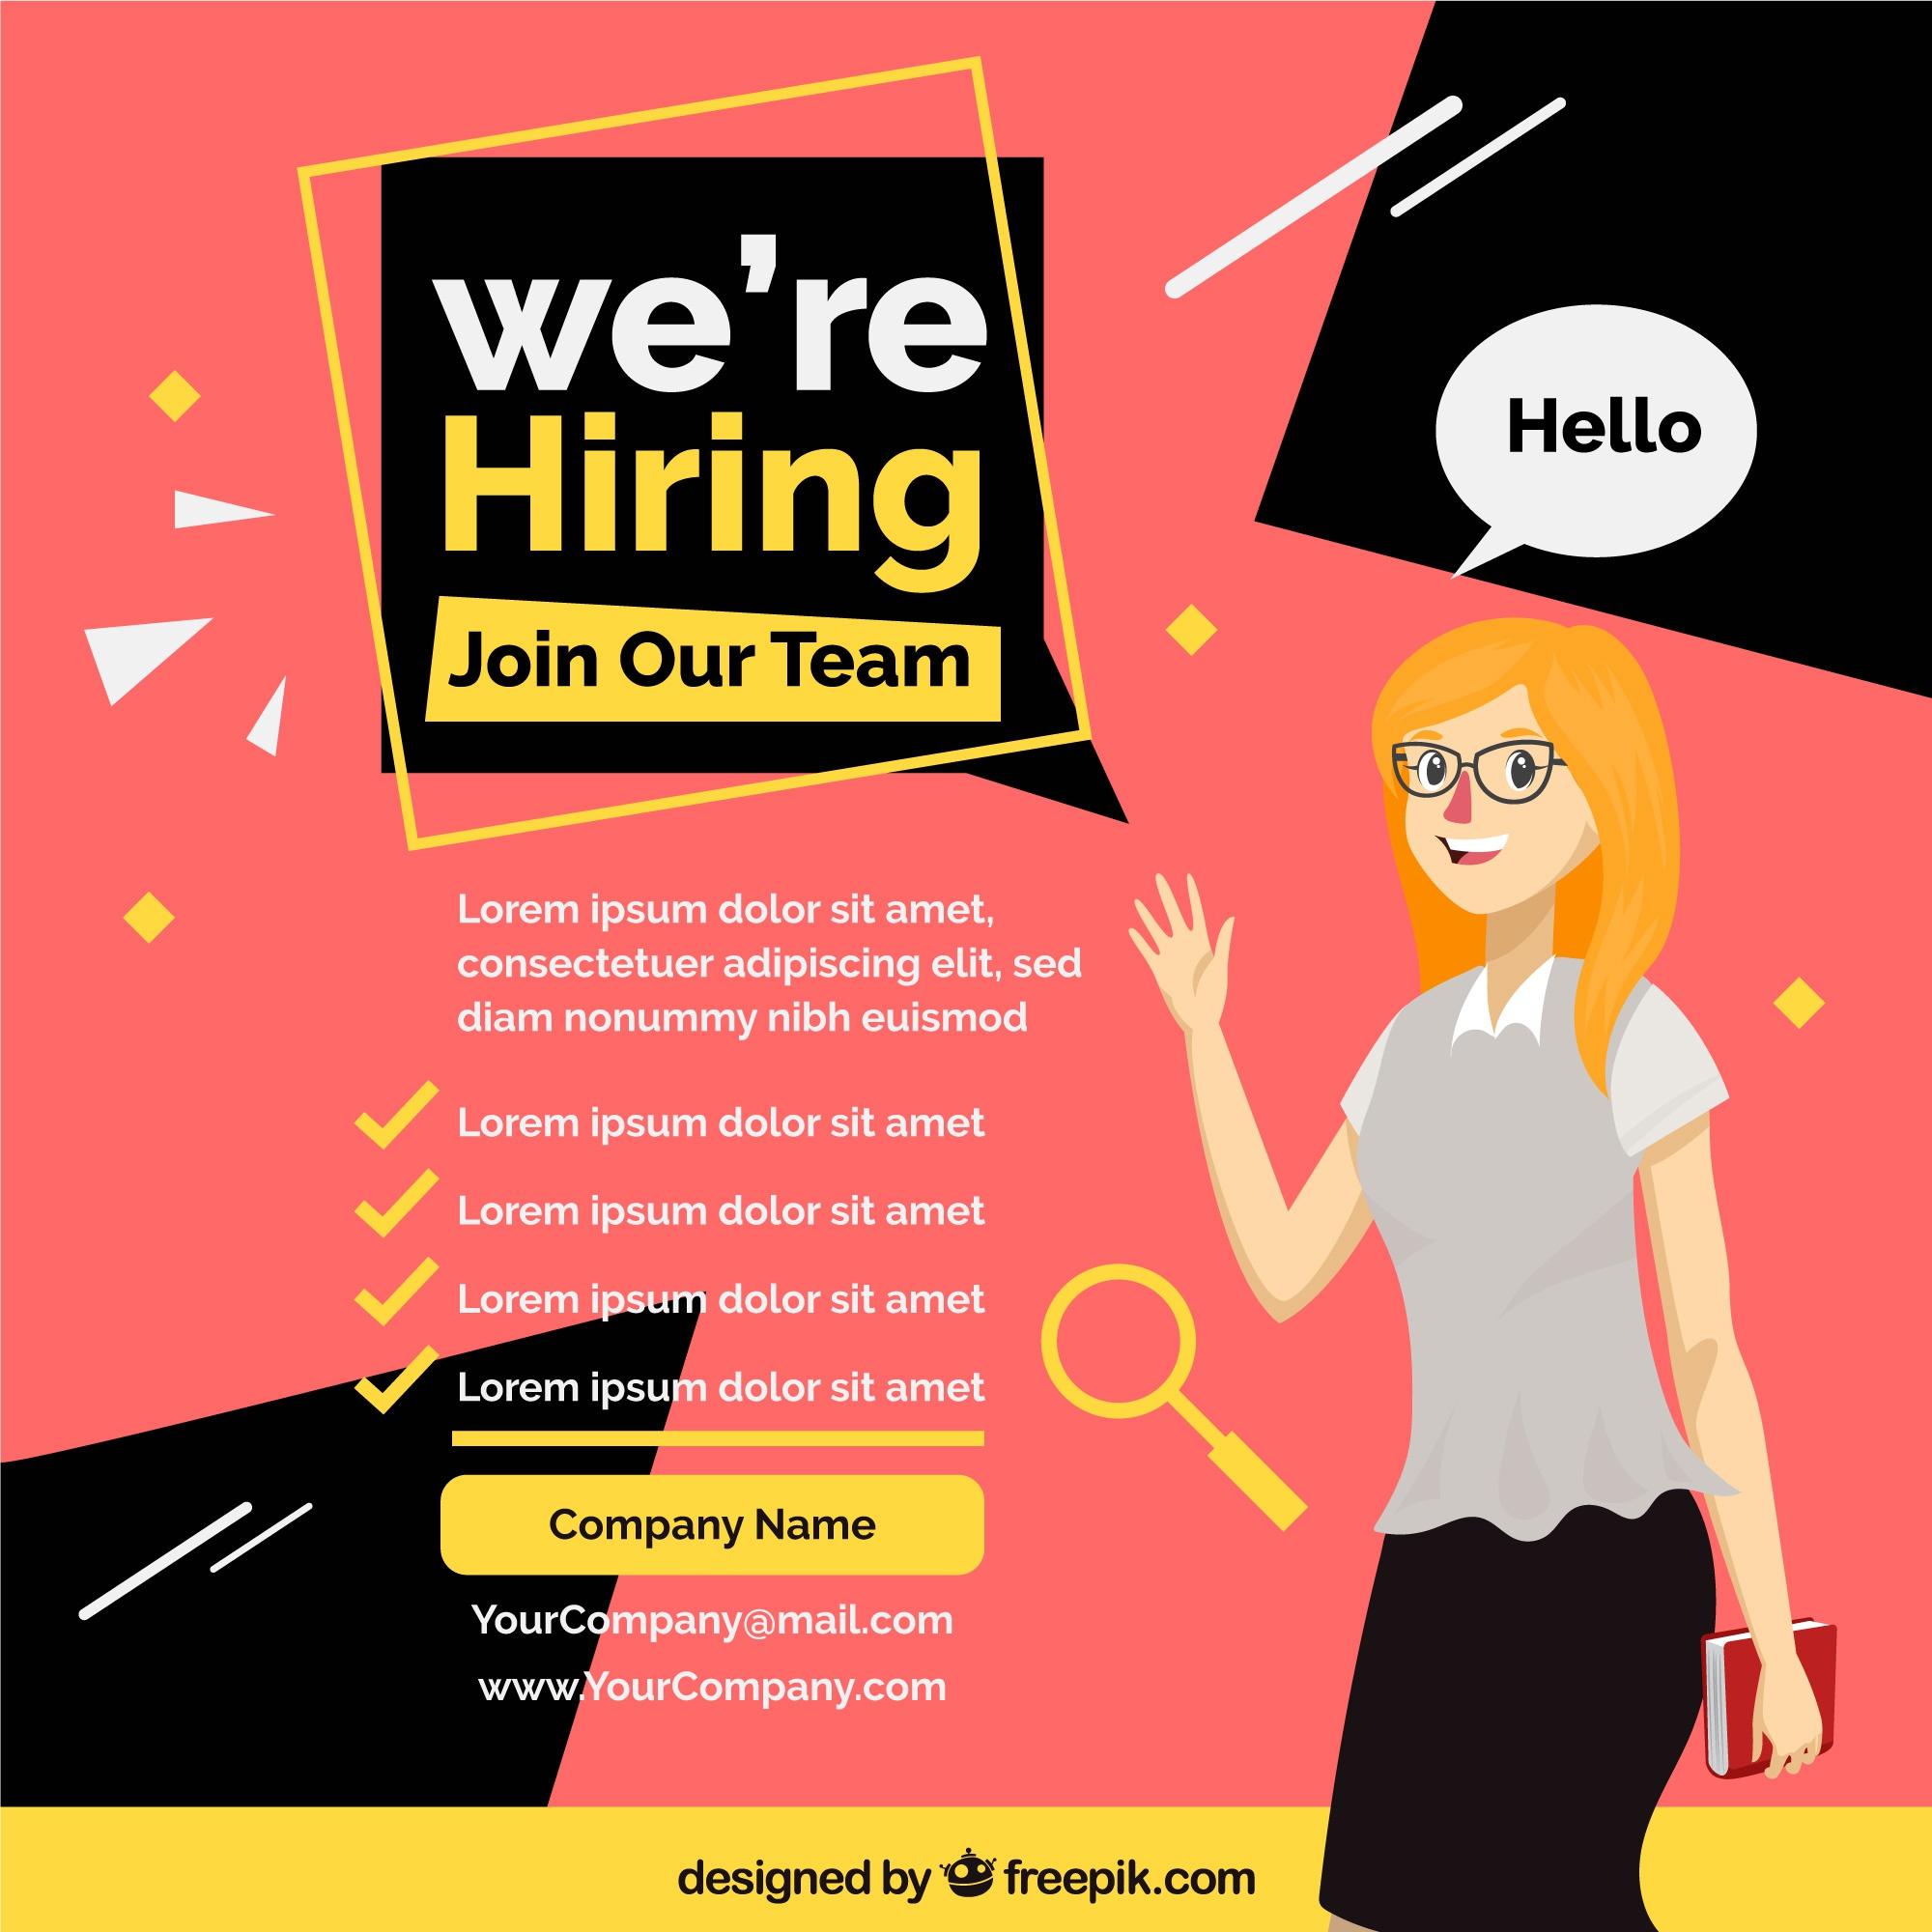 We are hiring background with worker